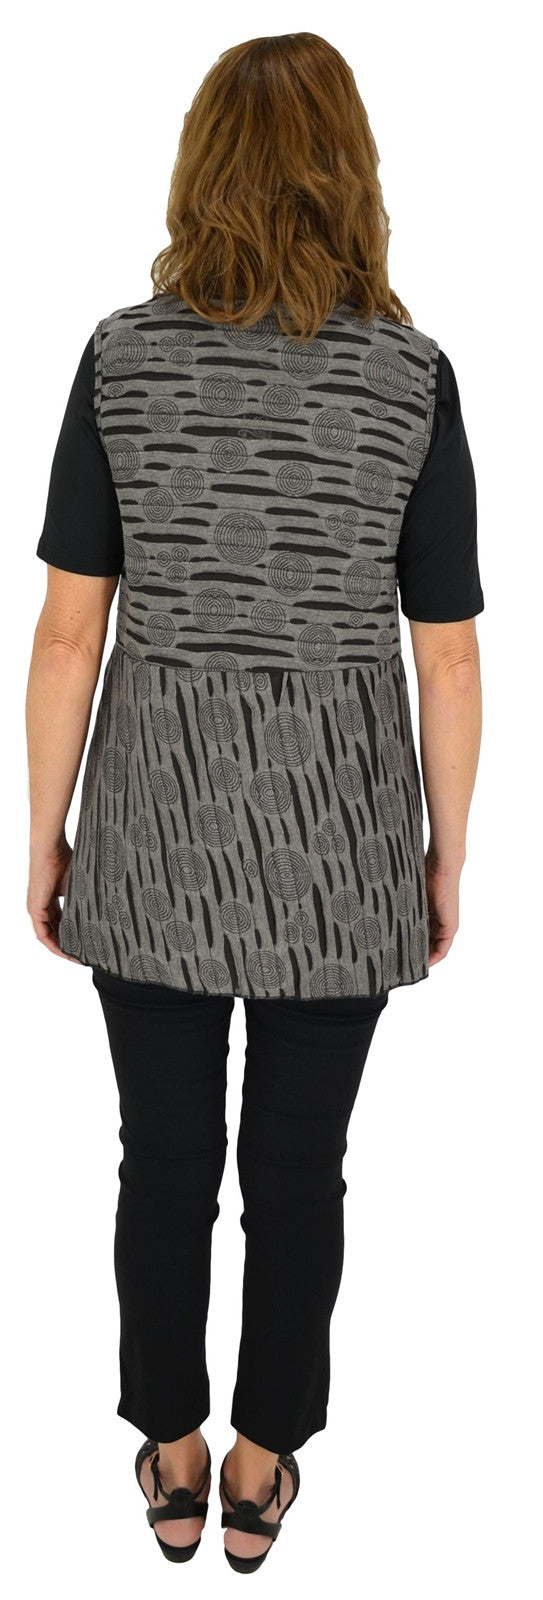 New York Vest - at I Love Tunics @ www.ilovetunics.com = Number One! Tunics Destination